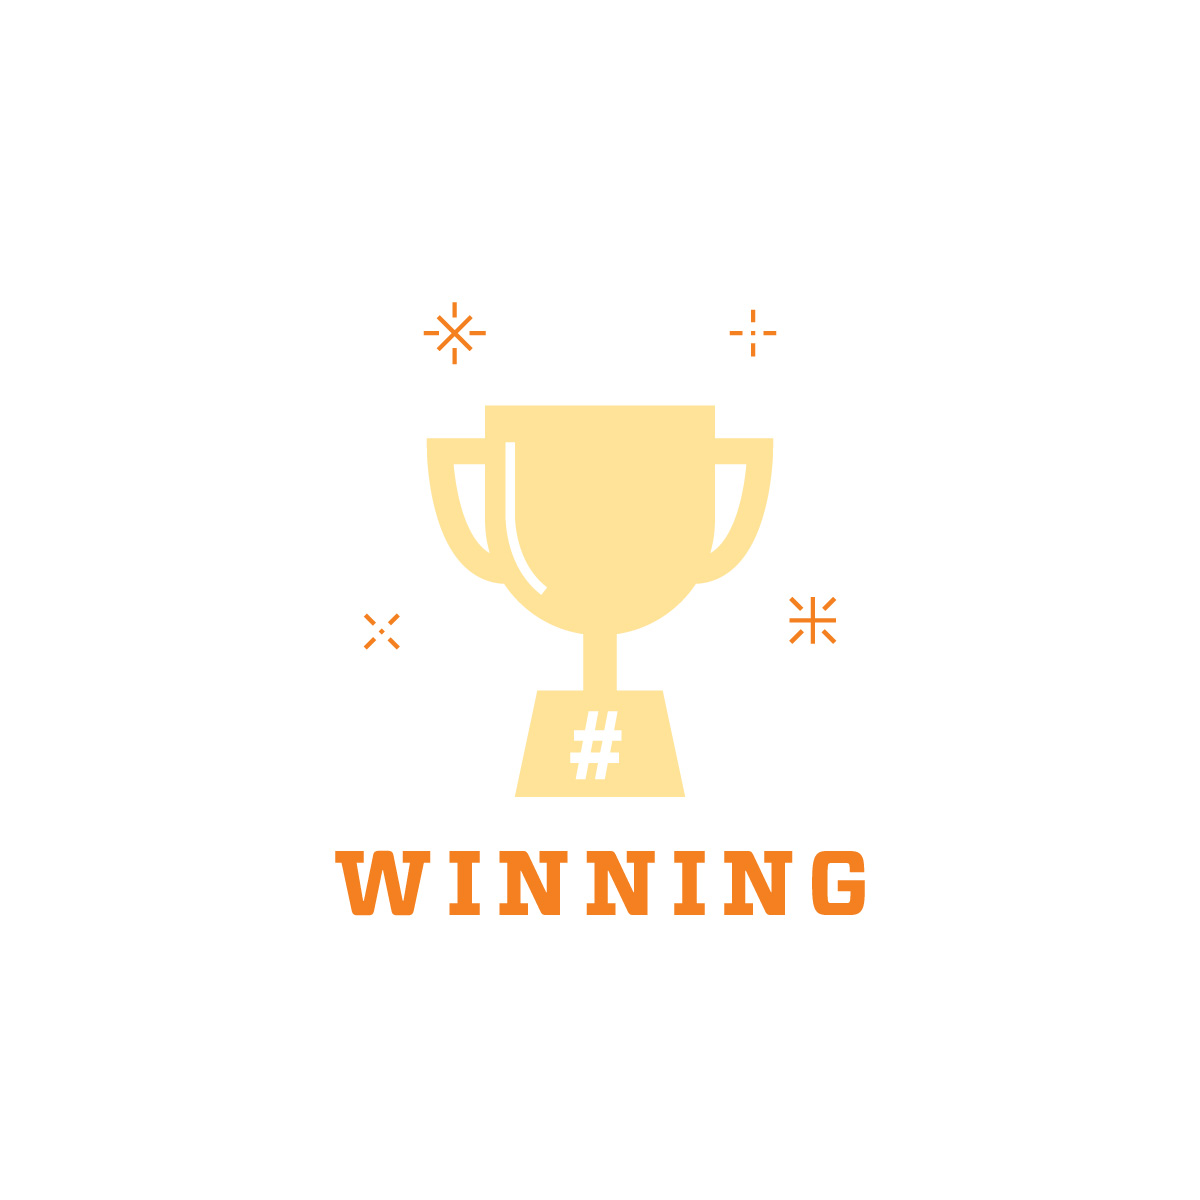 6 Easy Steps For Winning Social Media graphic with trophy